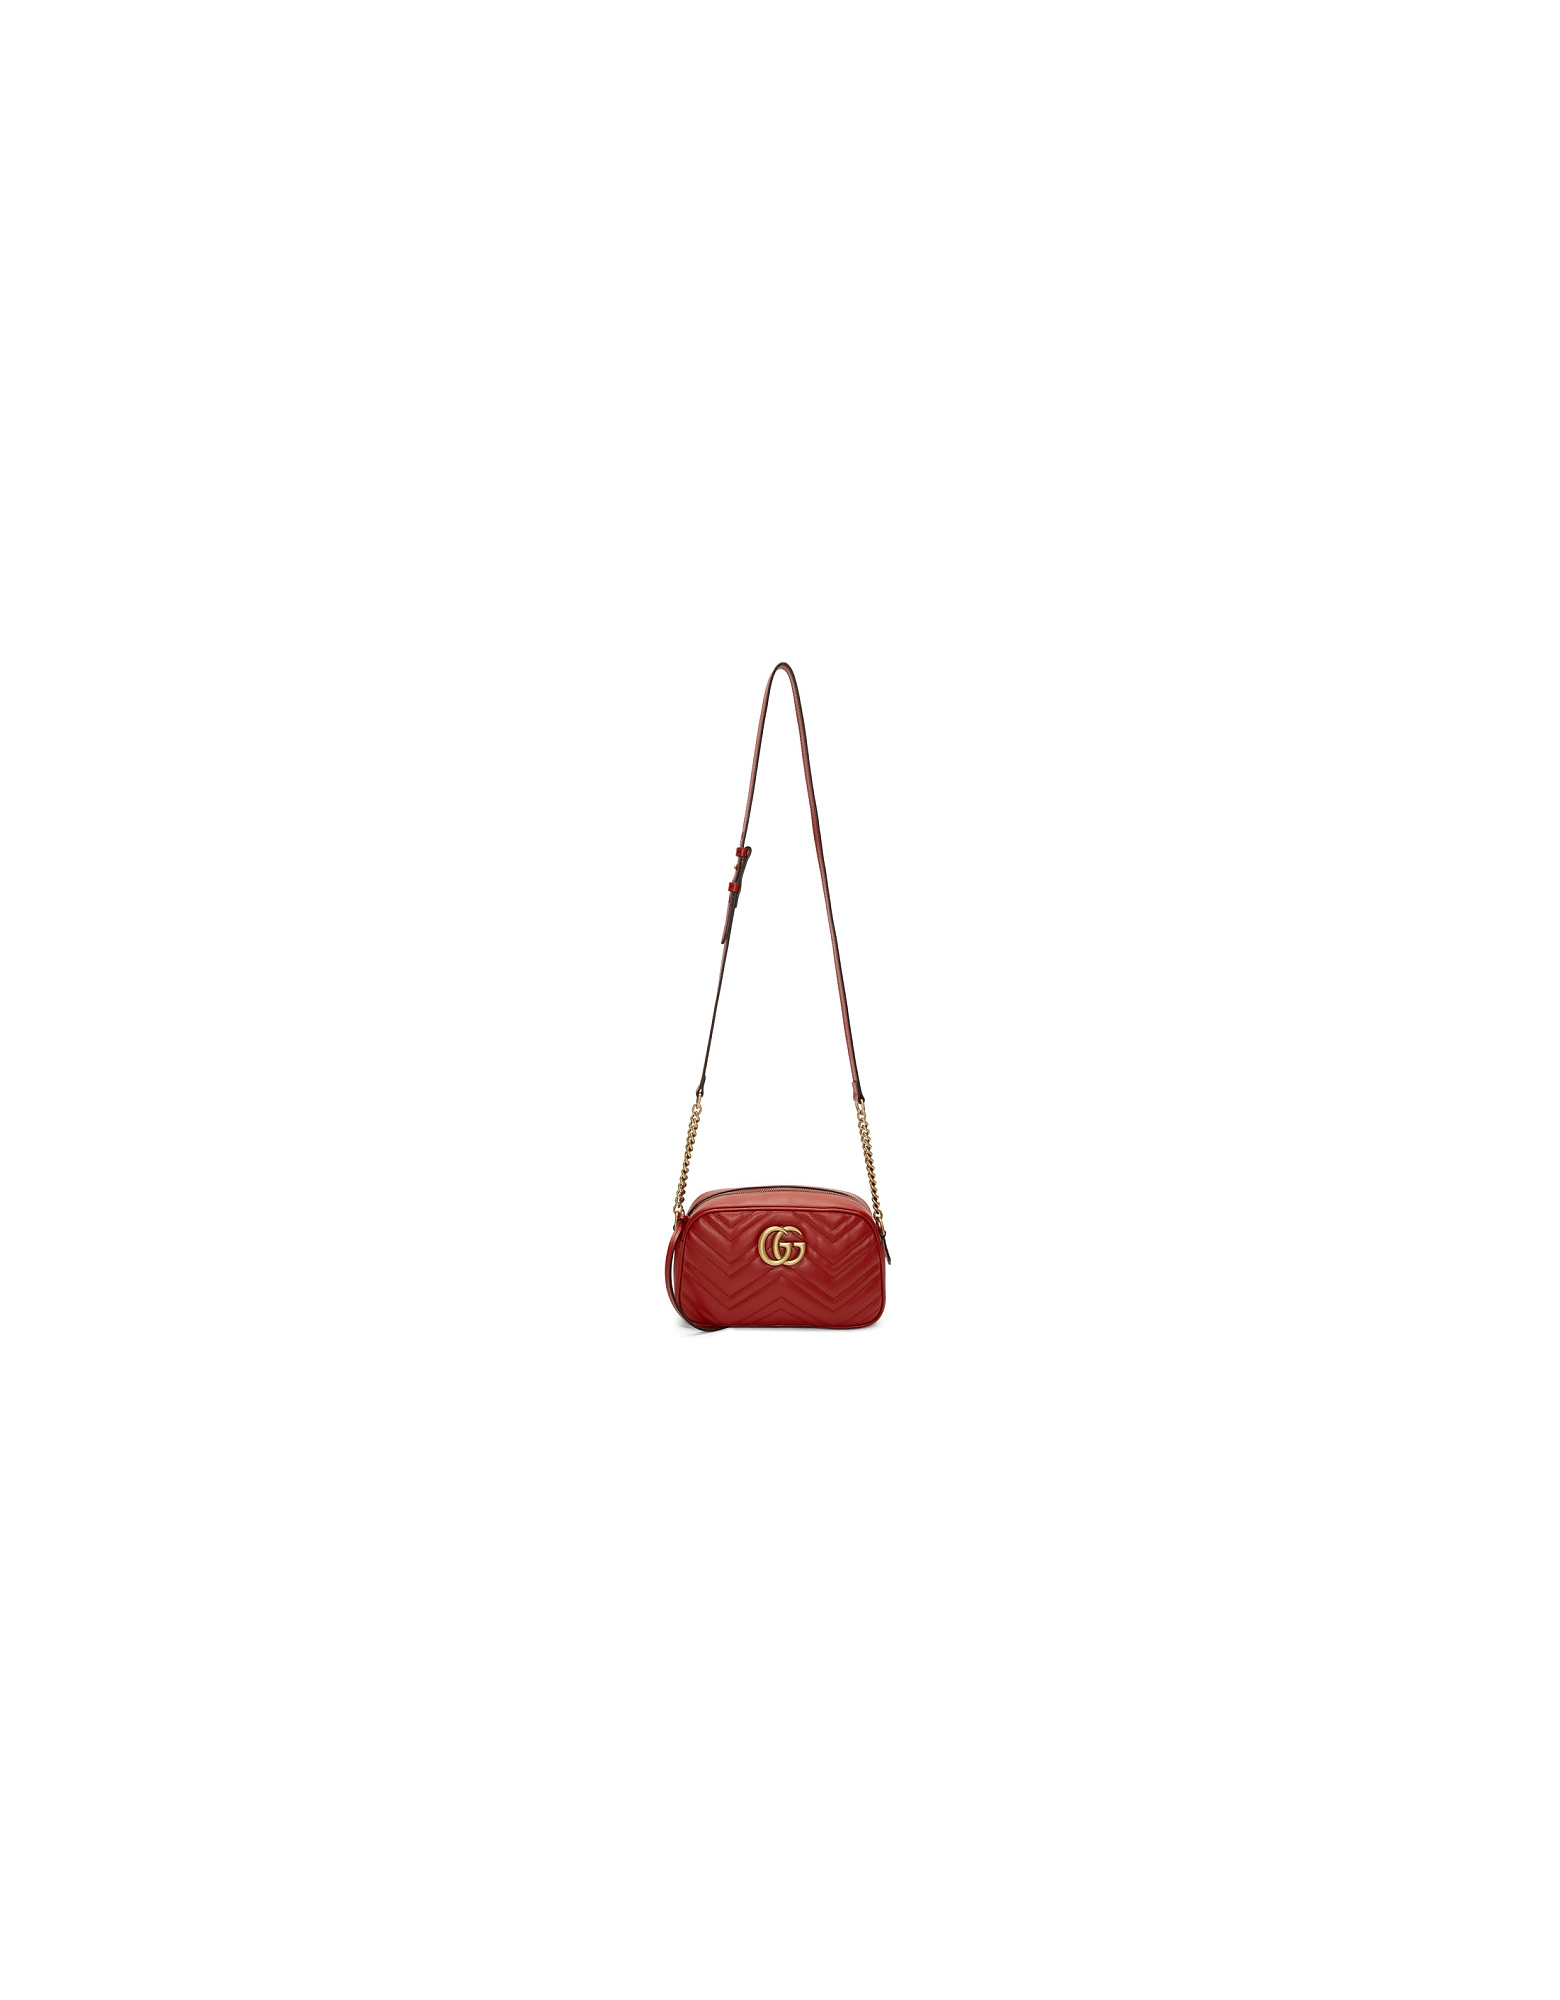 Gucci Designer Handbags, Red Small GG Marmont 2.0 Camera Bag